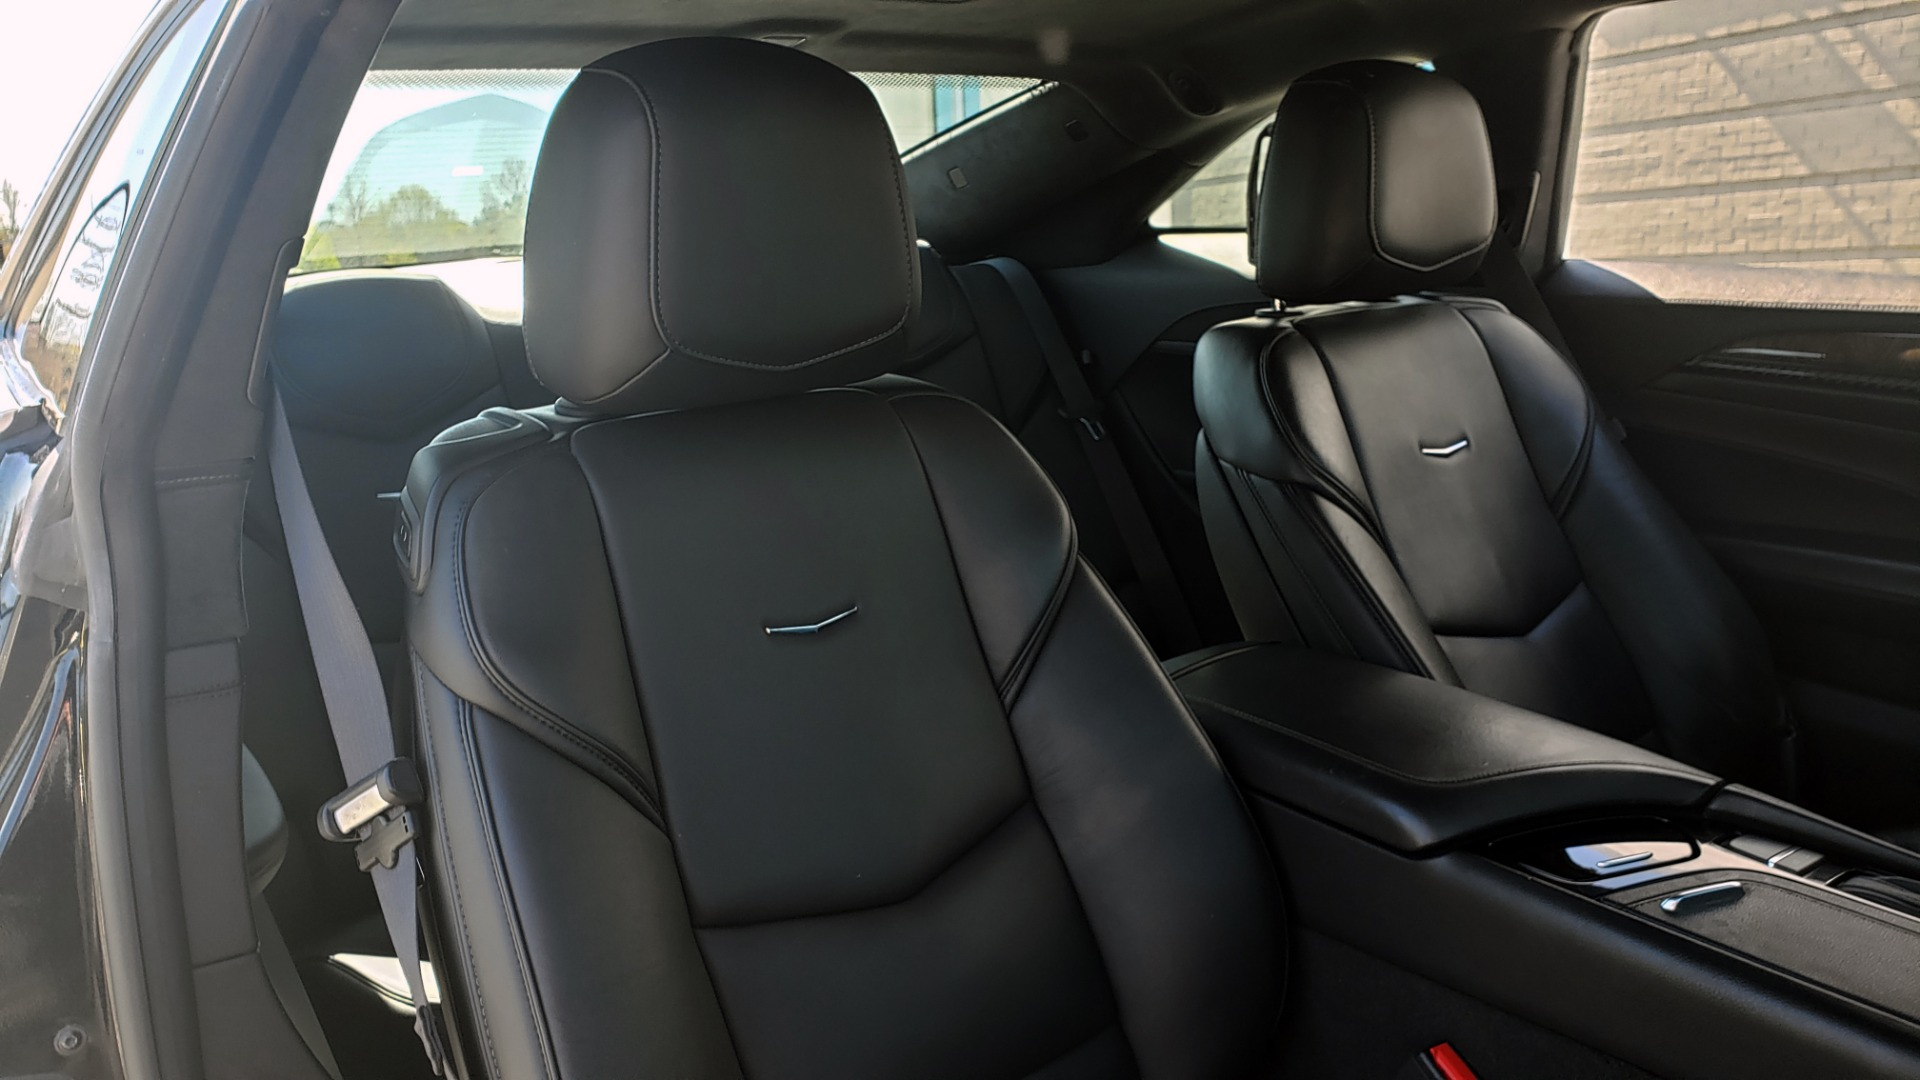 Used 2014 Cadillac ELR 2DR COUPE / HYBRID / NAV / BOSE / HEATED SEATS / REARVIEW for sale $19,995 at Formula Imports in Charlotte NC 28227 70